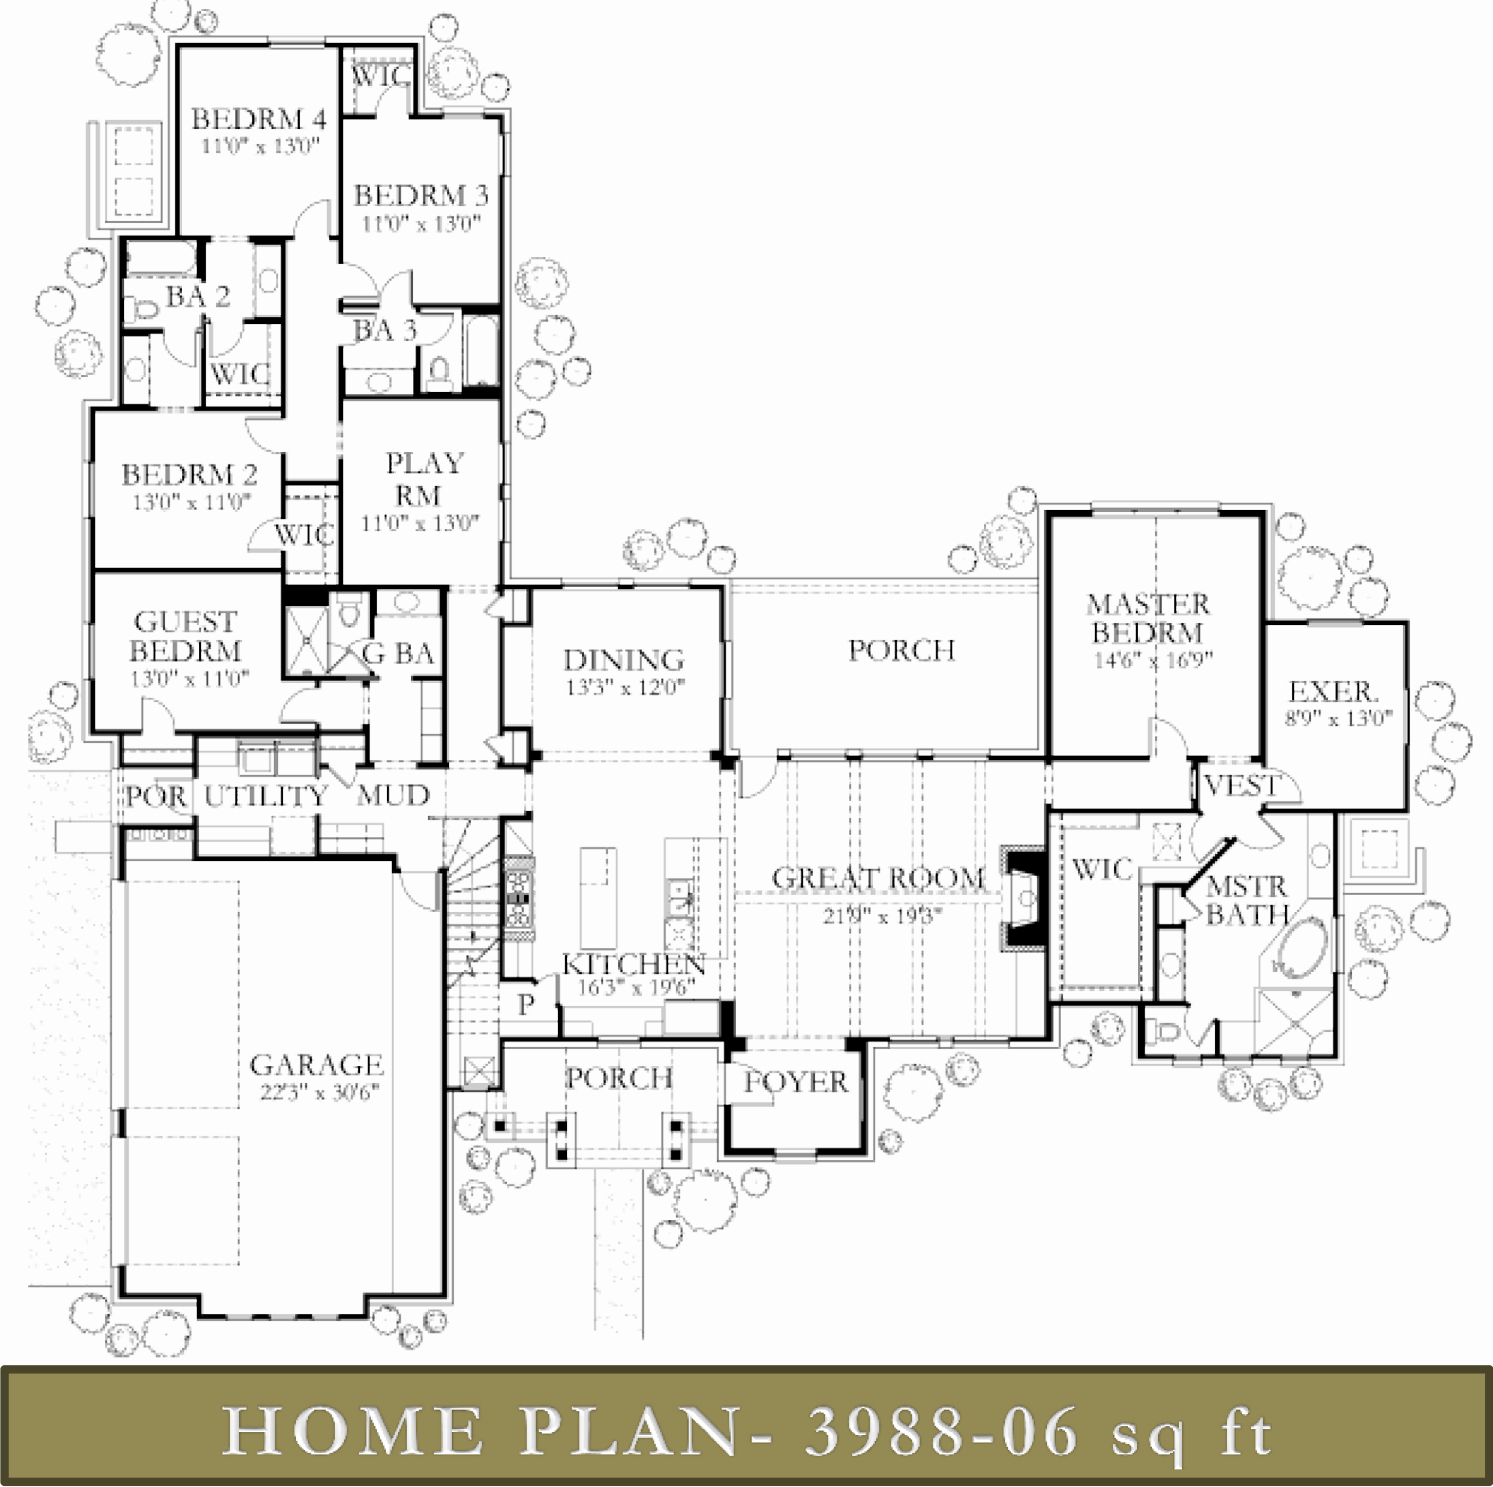 3500 4000 sq ft homes glazier homes for 4000 sq ft home